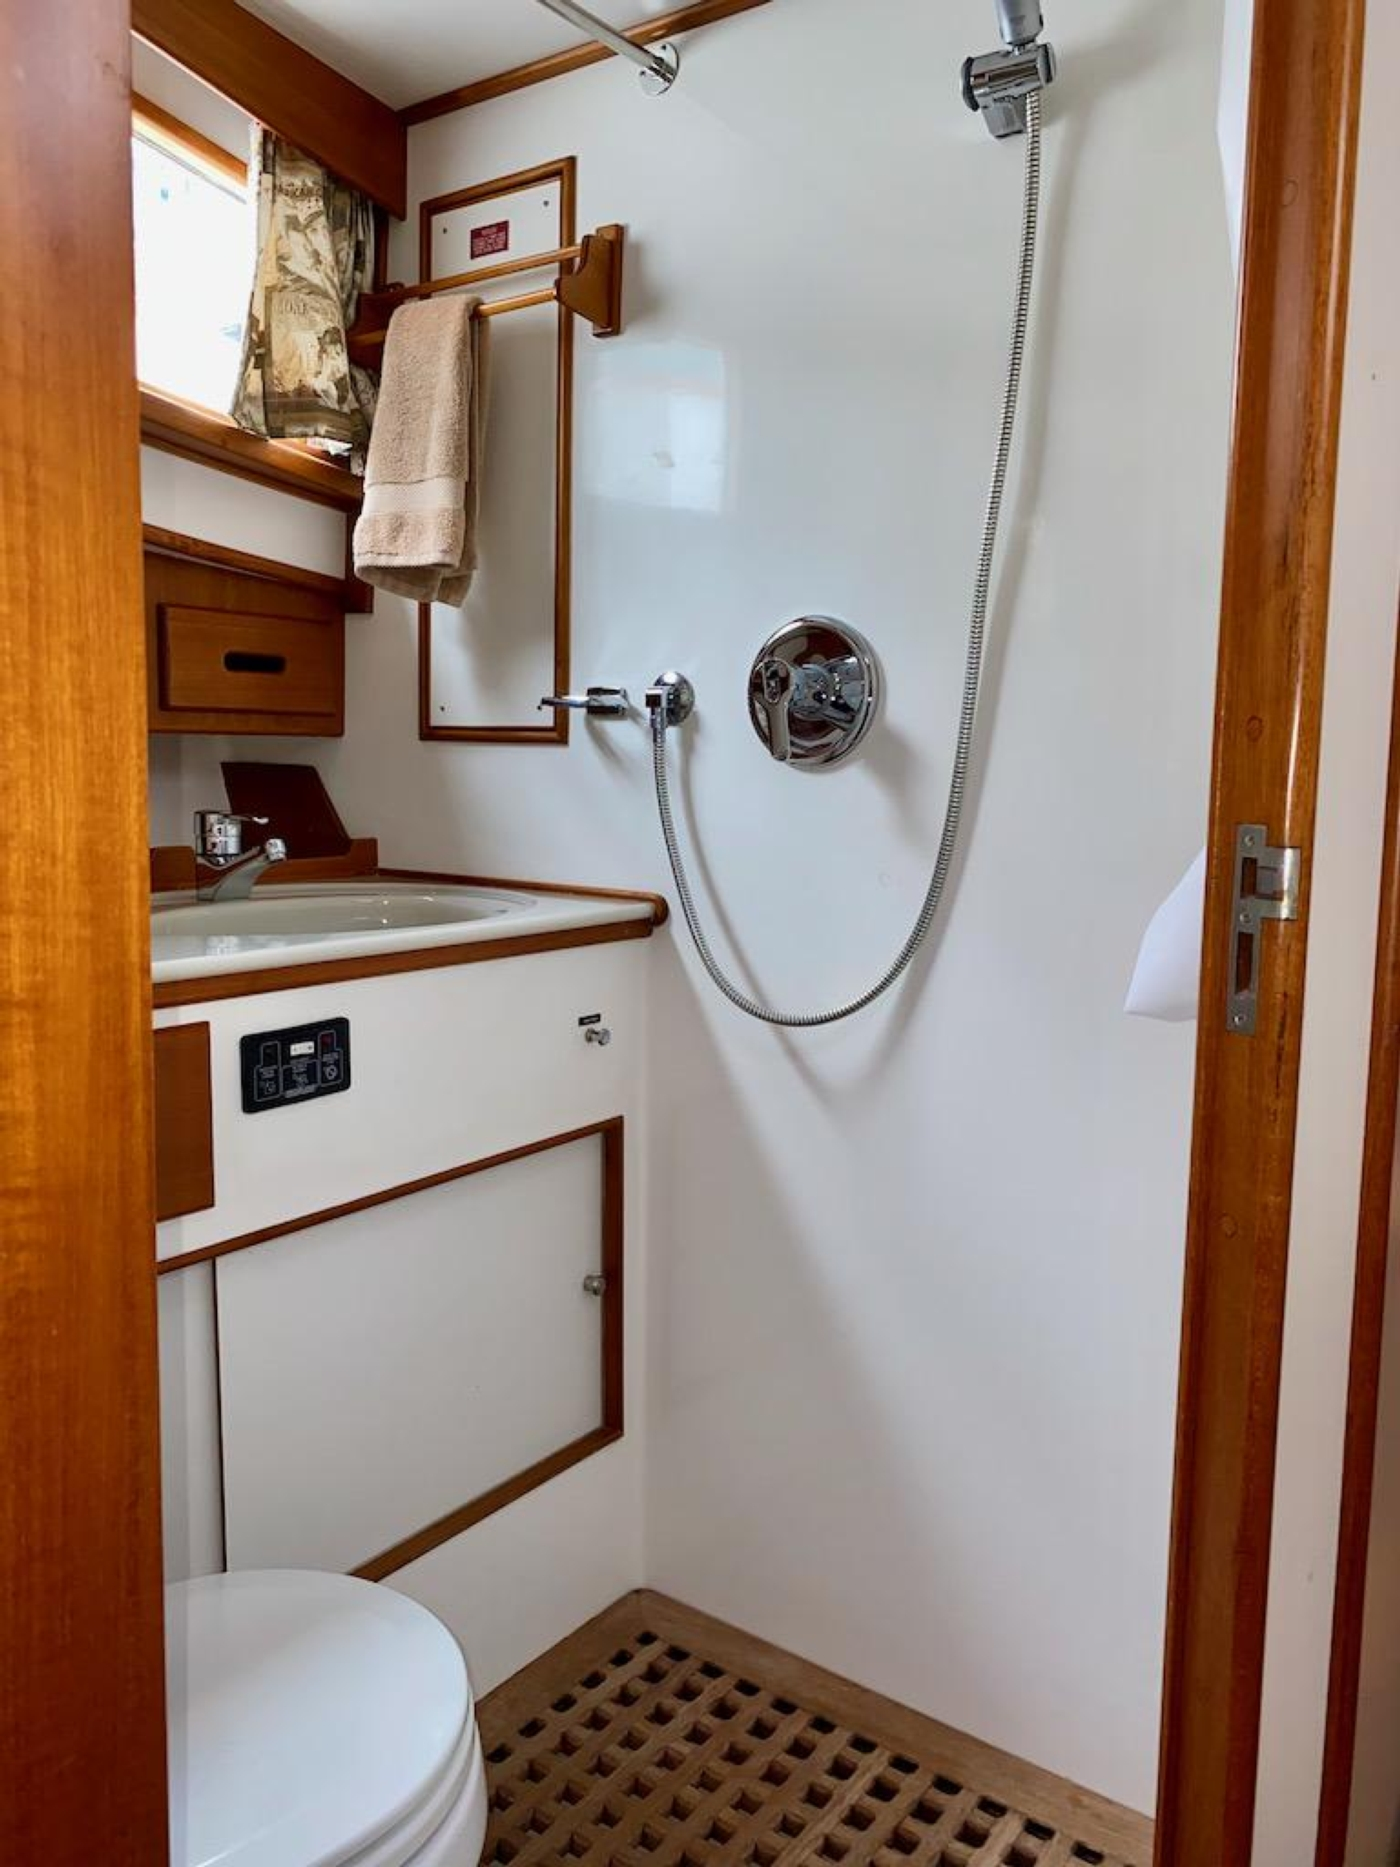 1998 Grand Banks 42 Classic, Fwd guest head 2